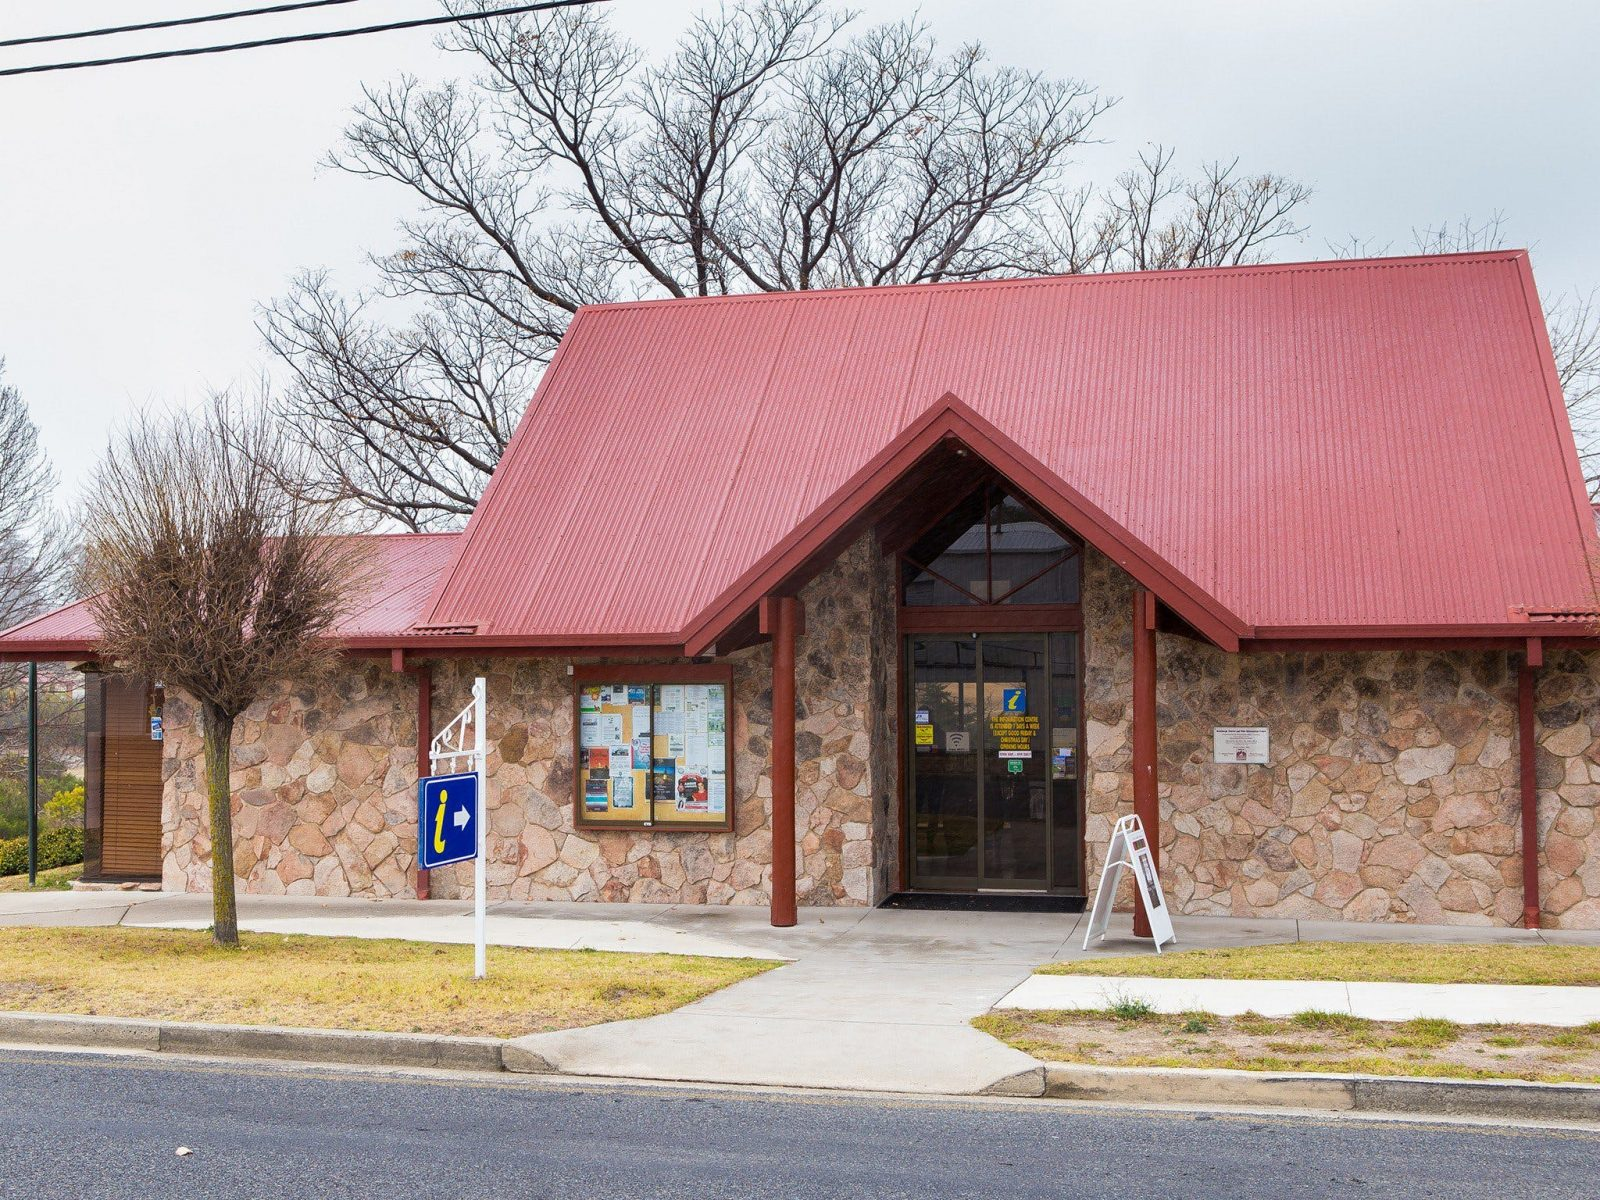 External photo of the Stanthorpe Visitor Info Centre